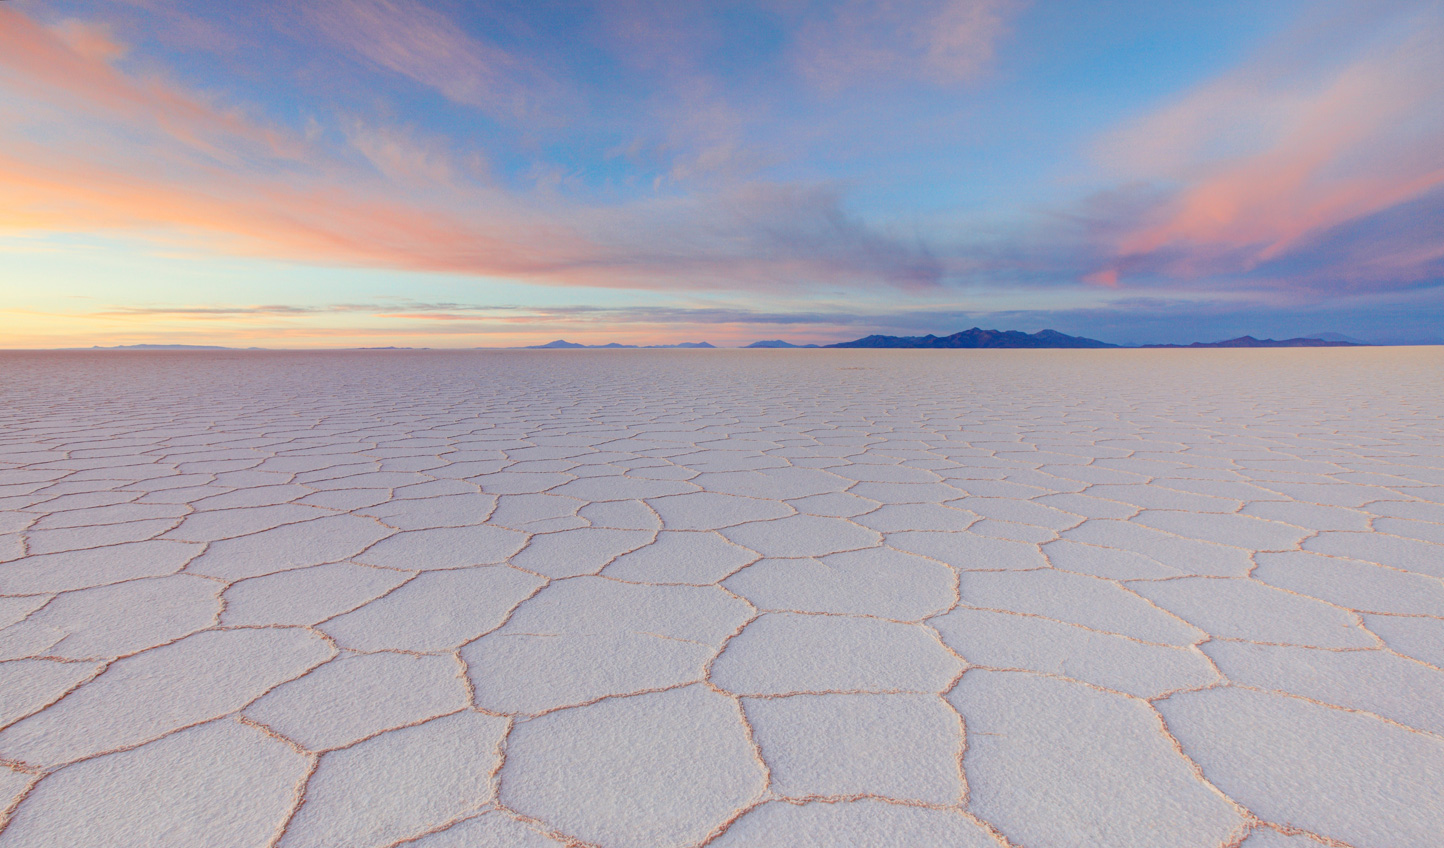 Discover splendid isolation in Bolivia